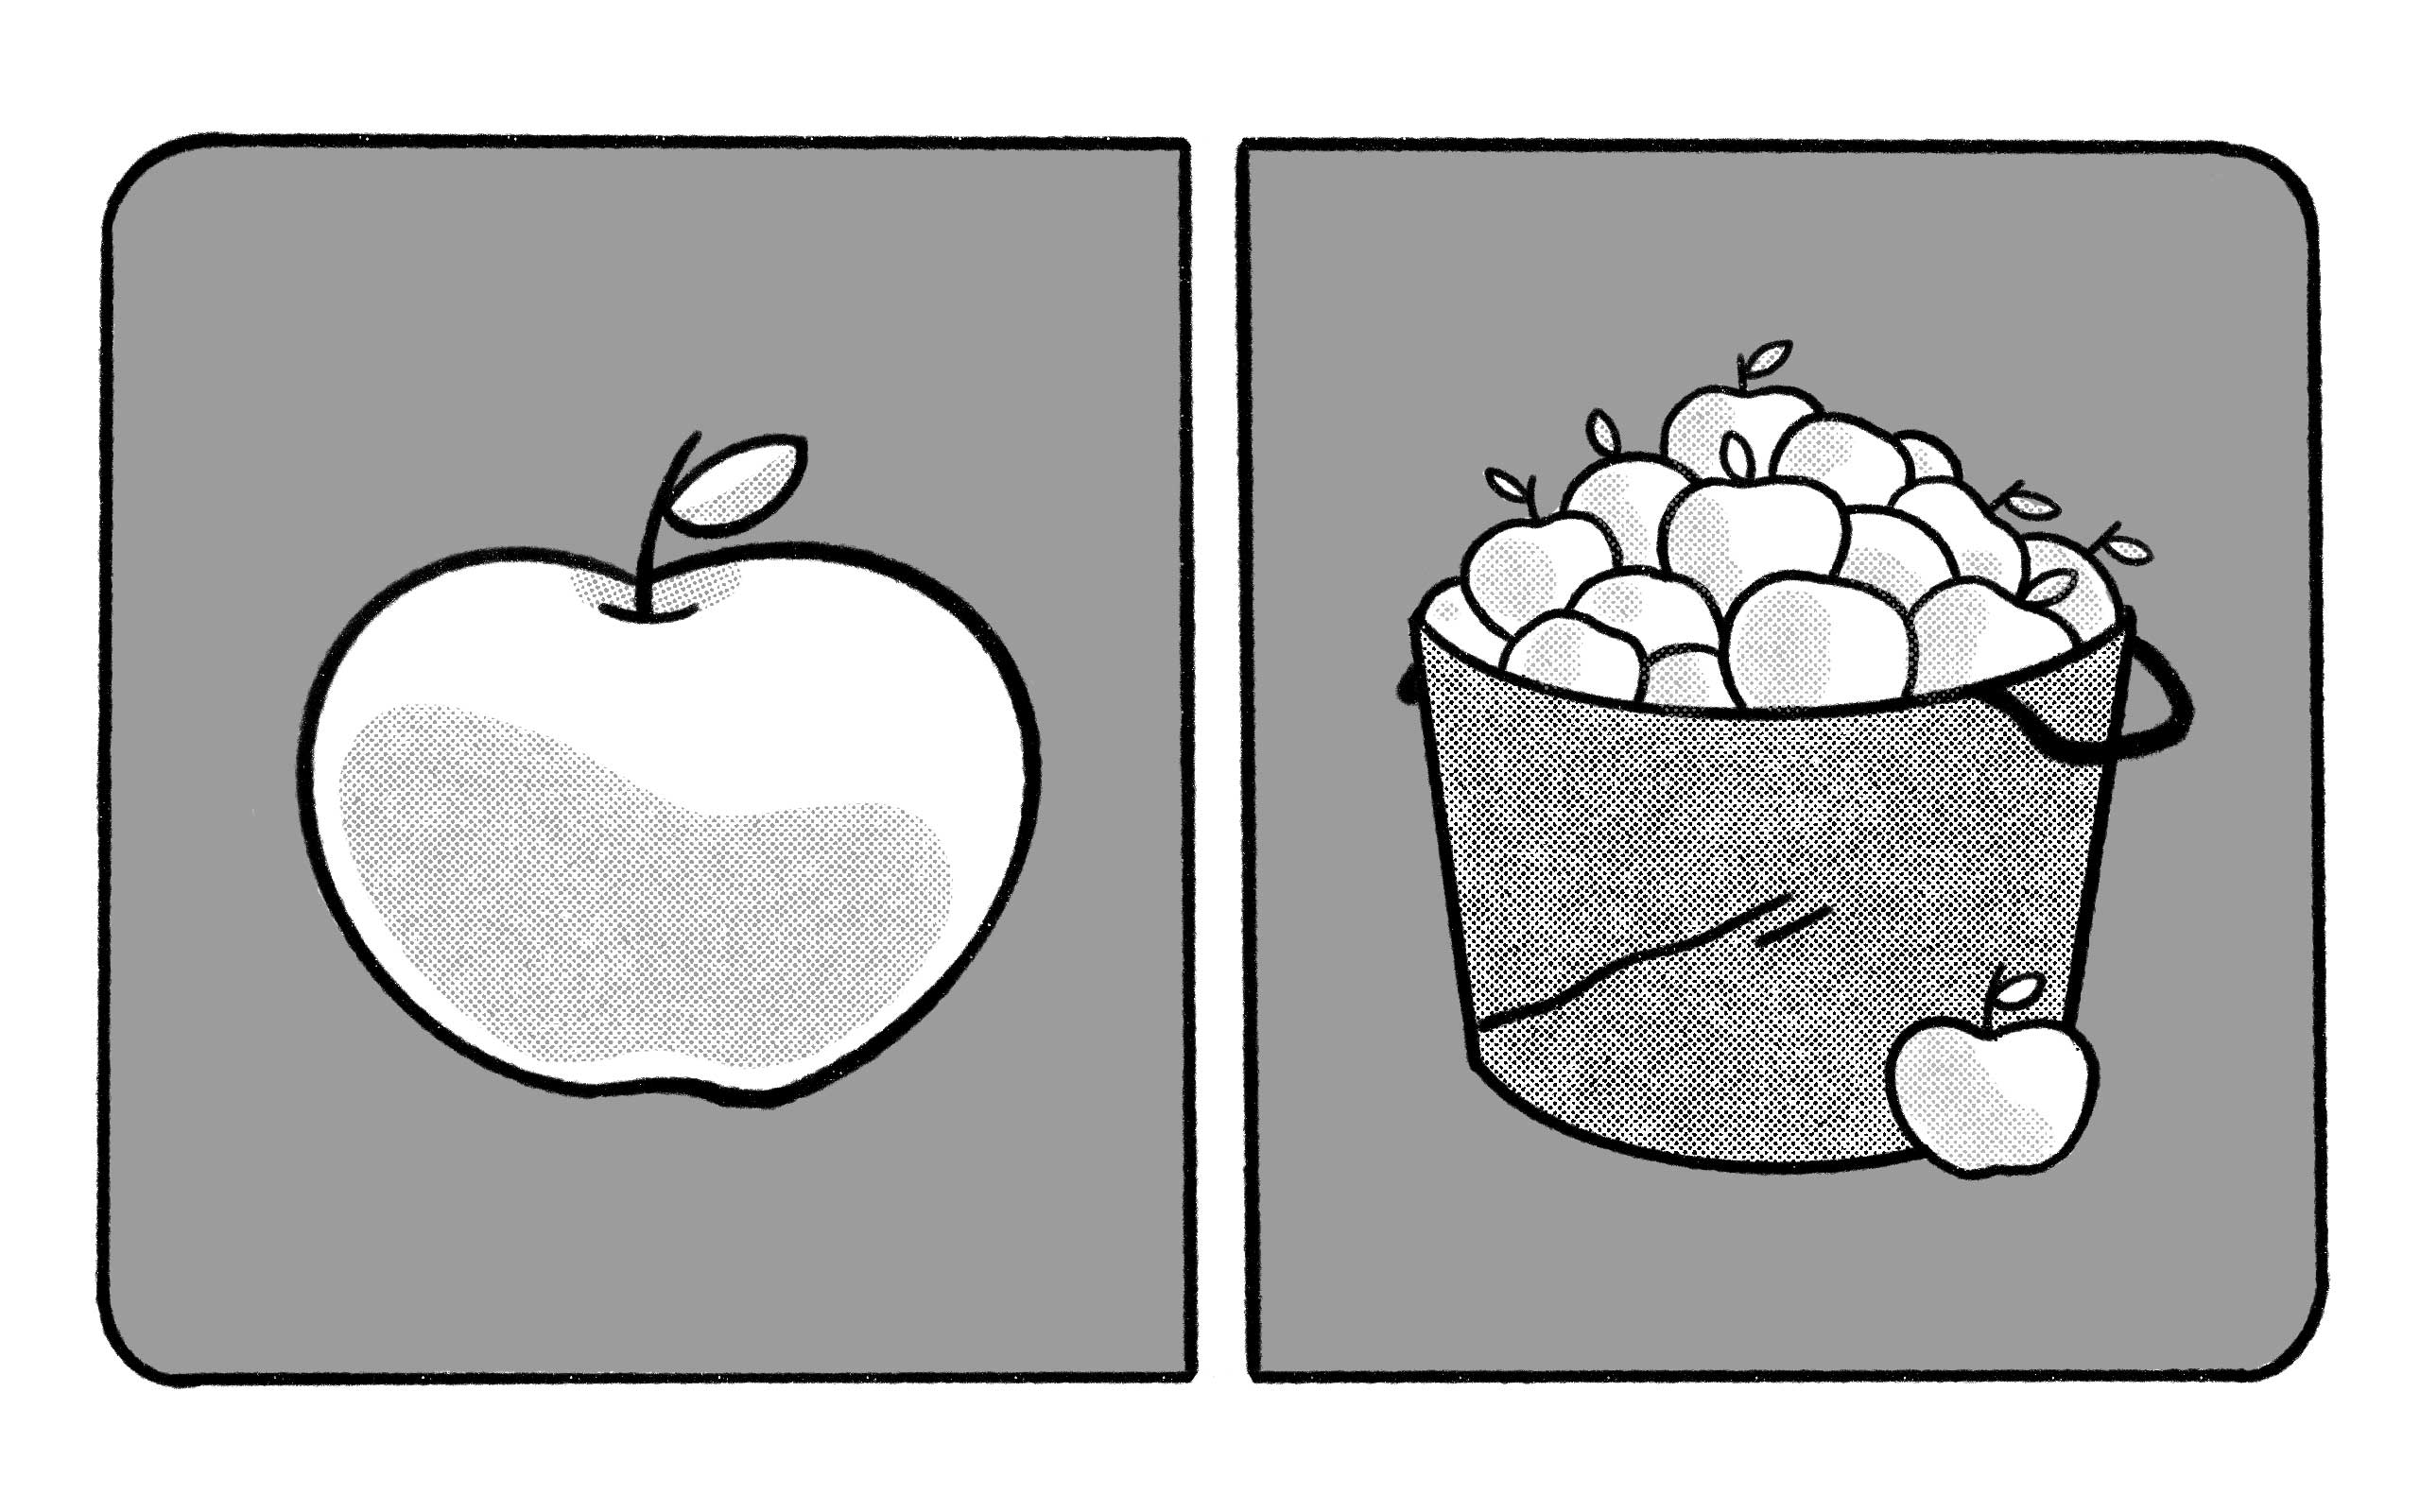 one apple next to a bucket of apples